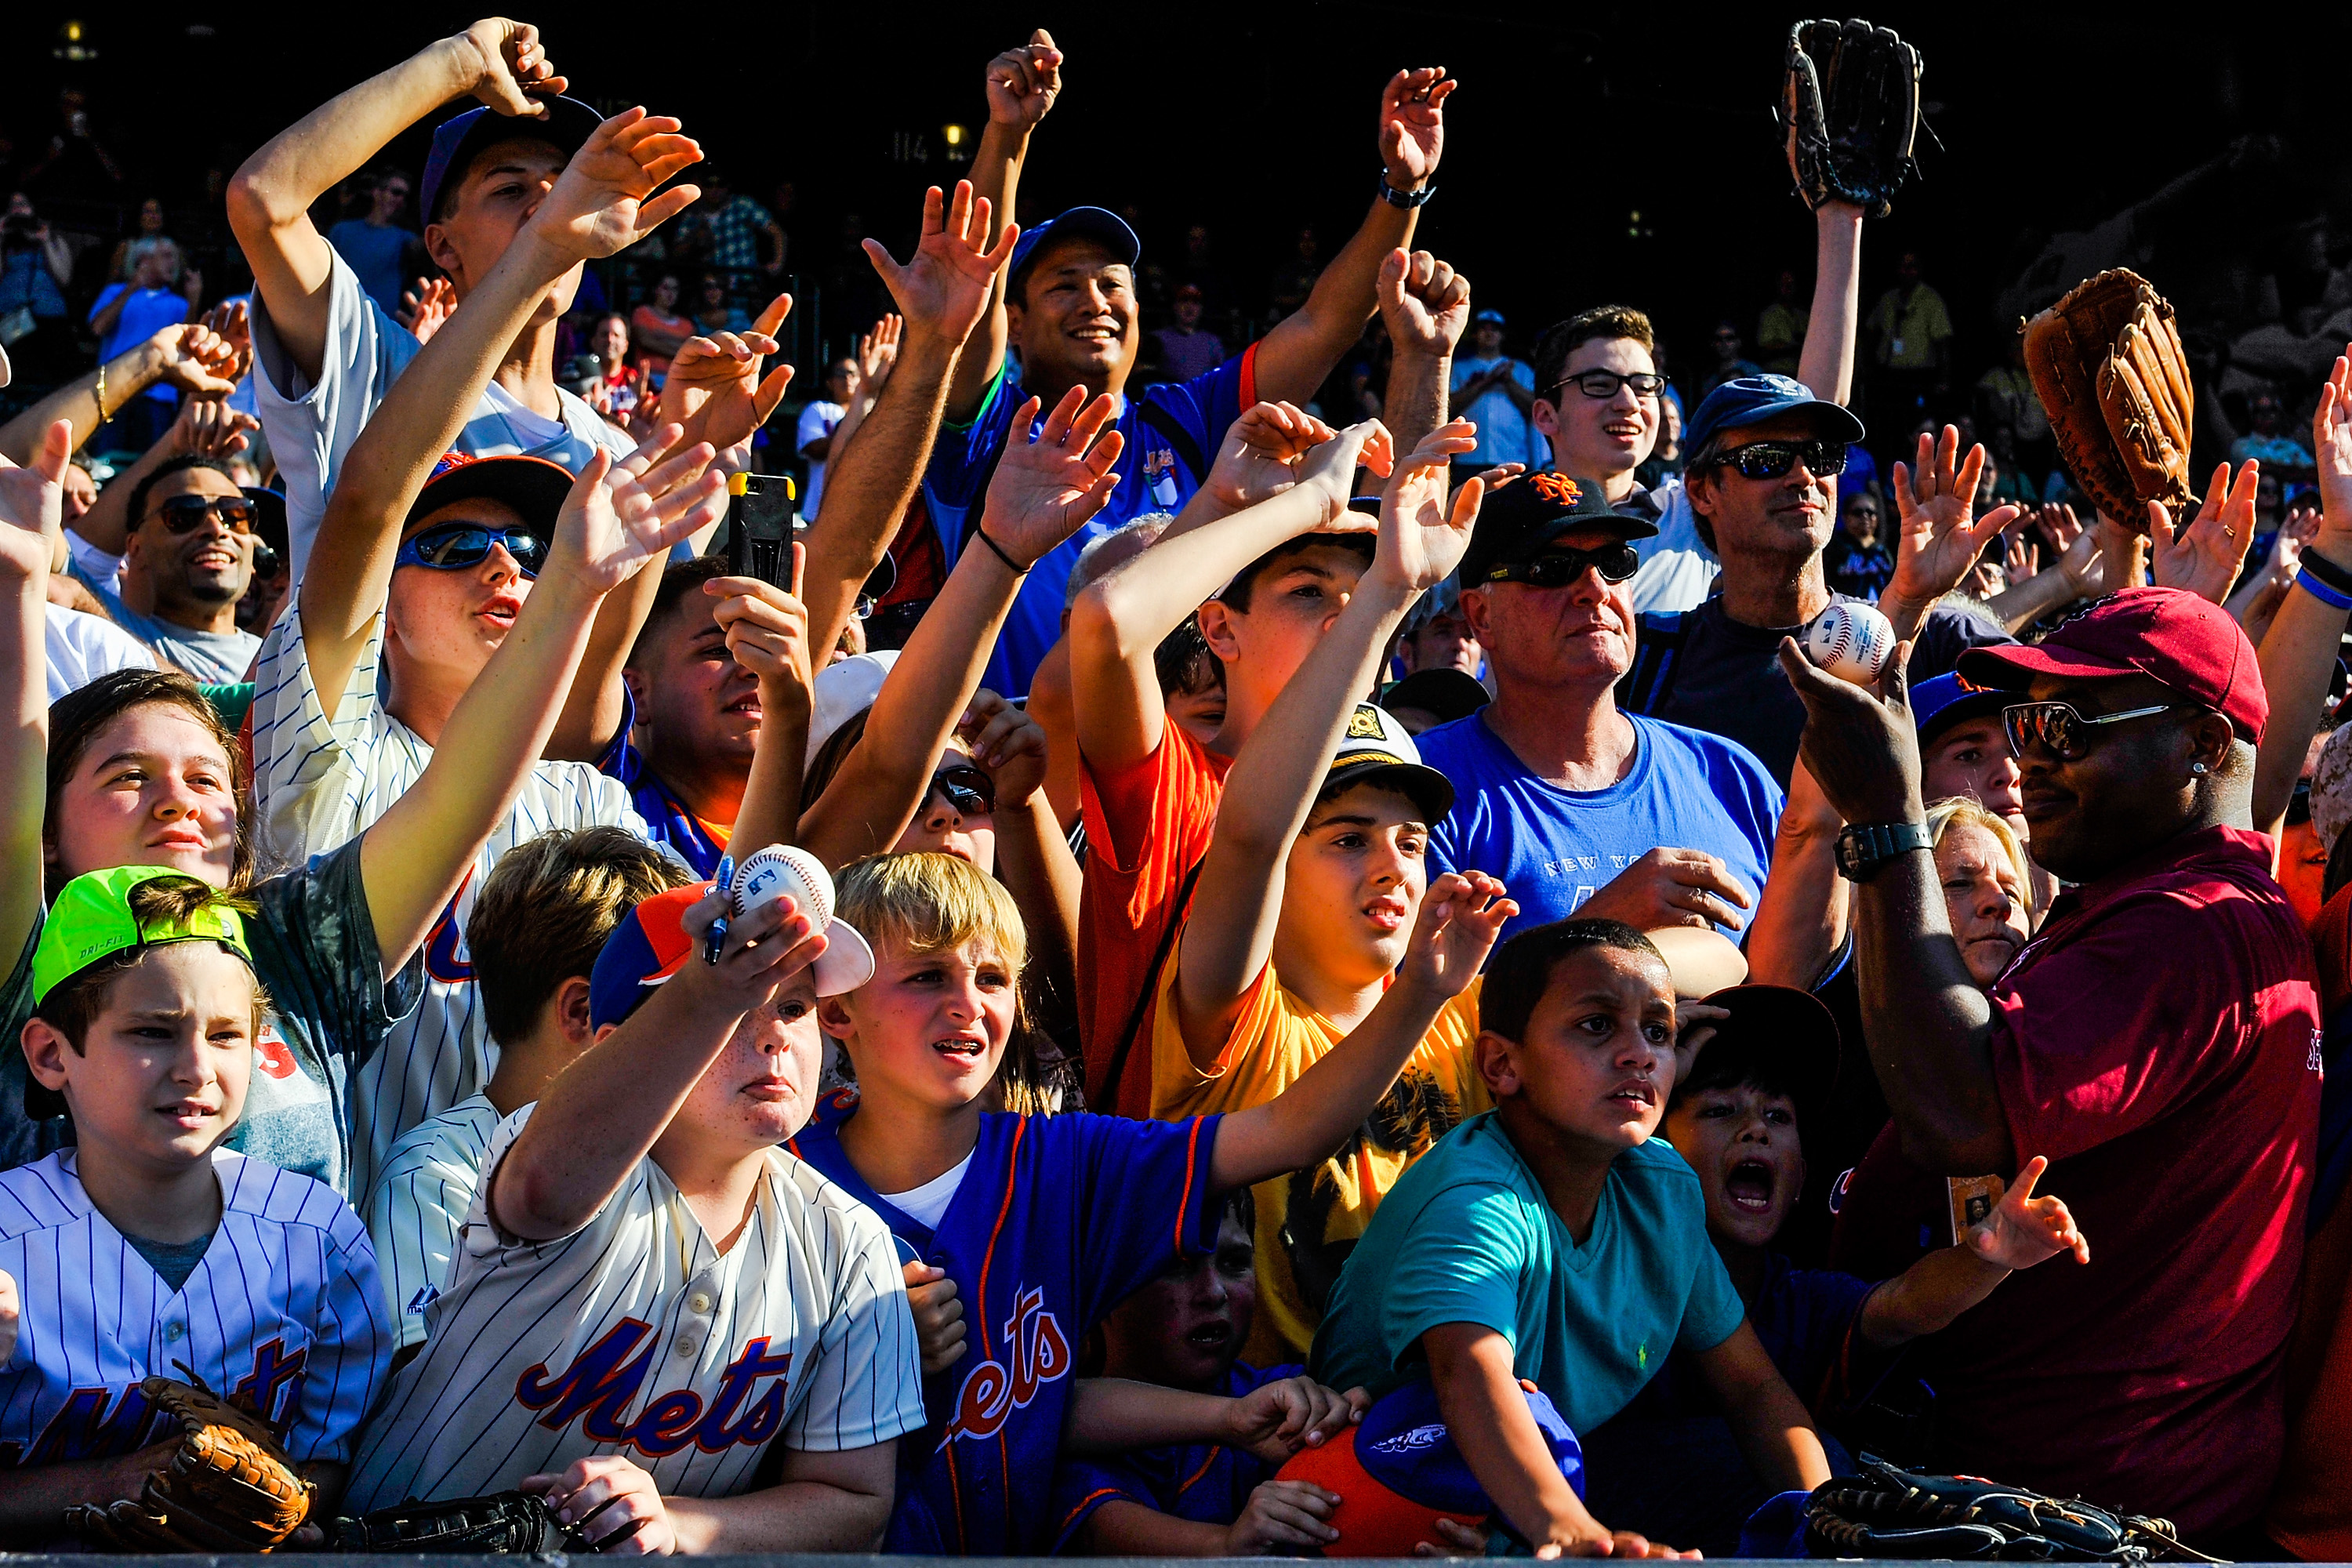 Children yell to players after a game between the New York Mets and Houston Astros at Citi Field on September 28, 2014 in the Flushing neighborhood of the Queens borough of New York City.